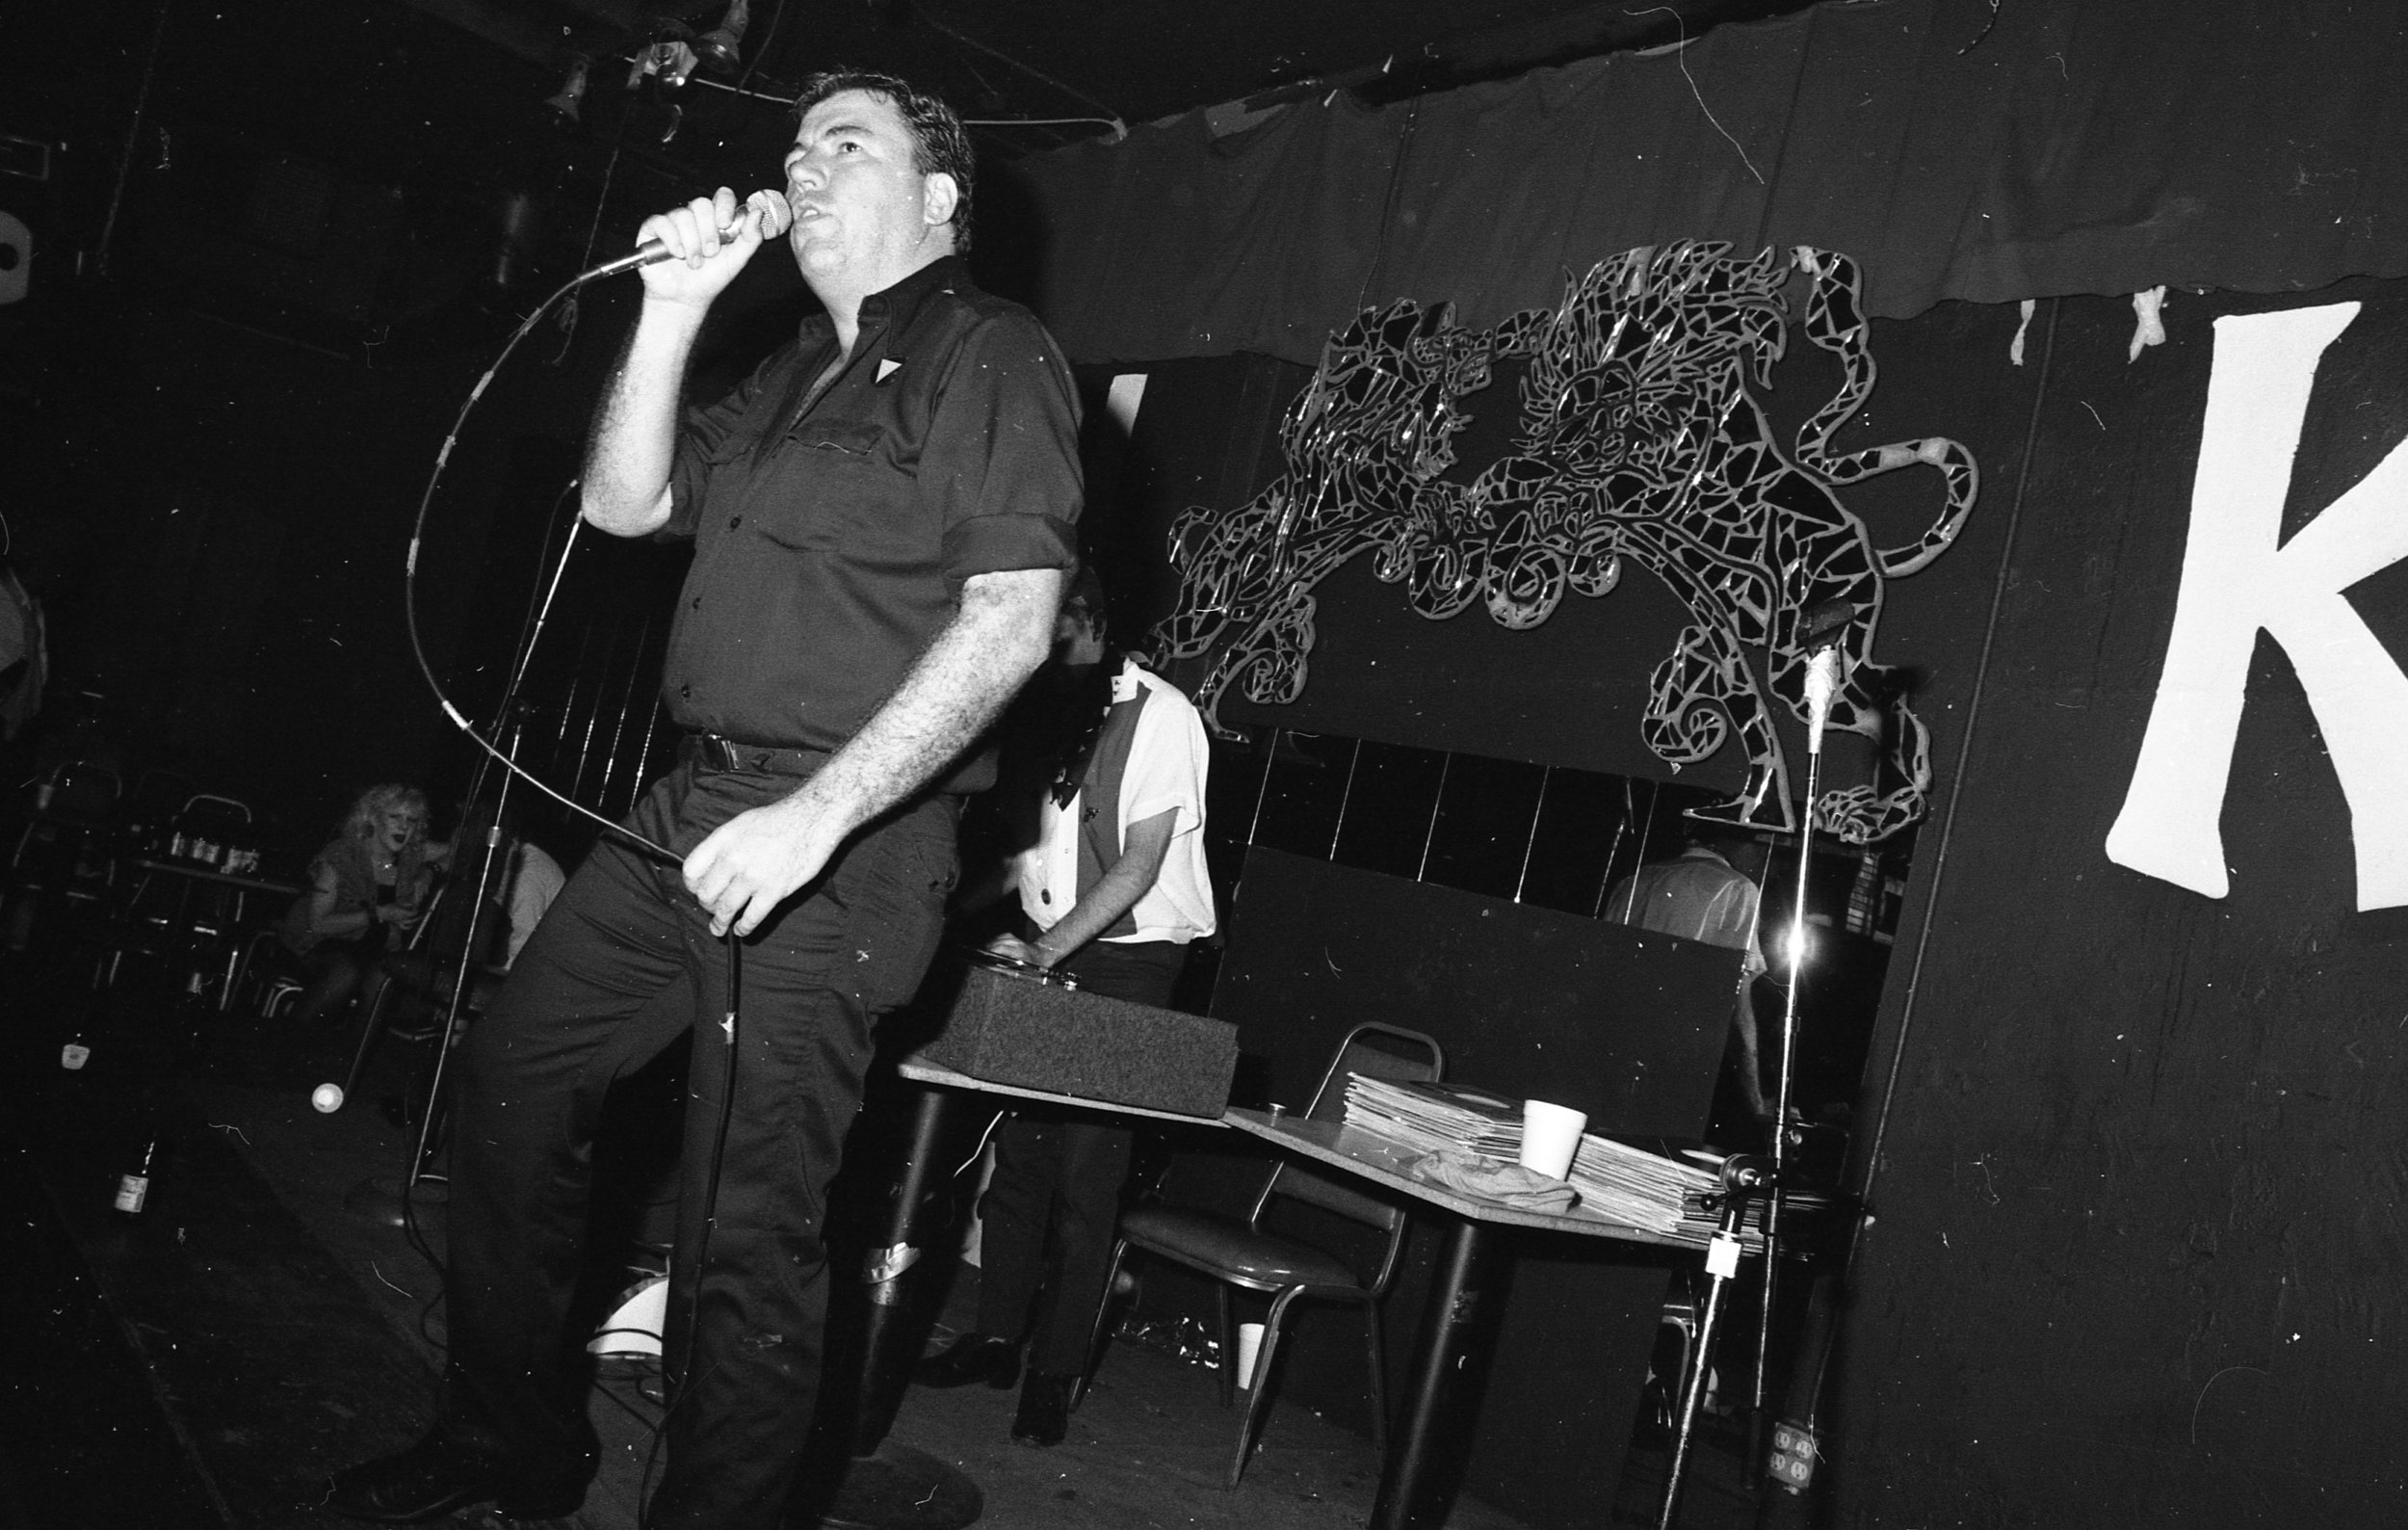 John Callahan (1945-2003) of gay rap duo, Age of Consent, rap night, On Klub, Los Angeles, August 1981